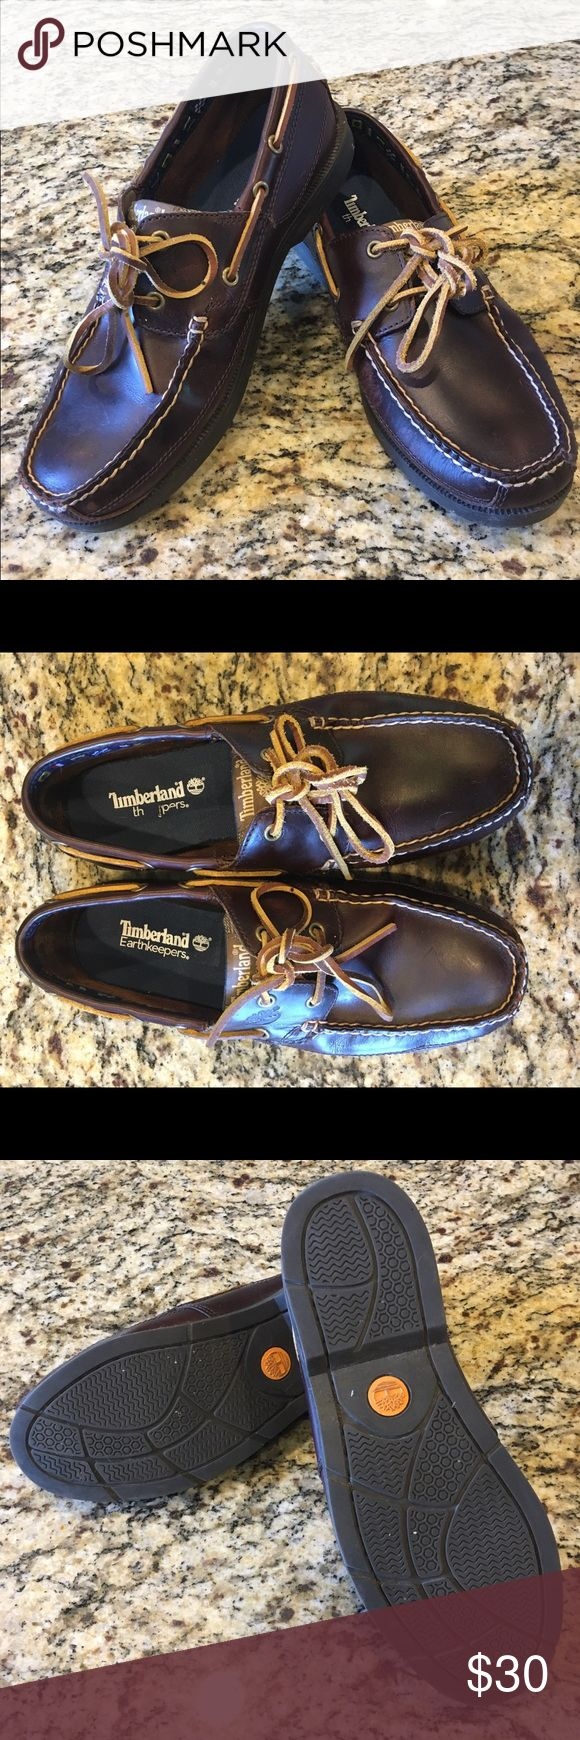 Timberland Leather Boat Shoe Men's Timberland Earthkeepers Kiawah Bay Boat Shoe - Brown Leather. Excellent Condition - only worn a few times. Minor scuffs on the inside of one shoe. Smoke Free Home. Timberland Shoes Boat Shoes